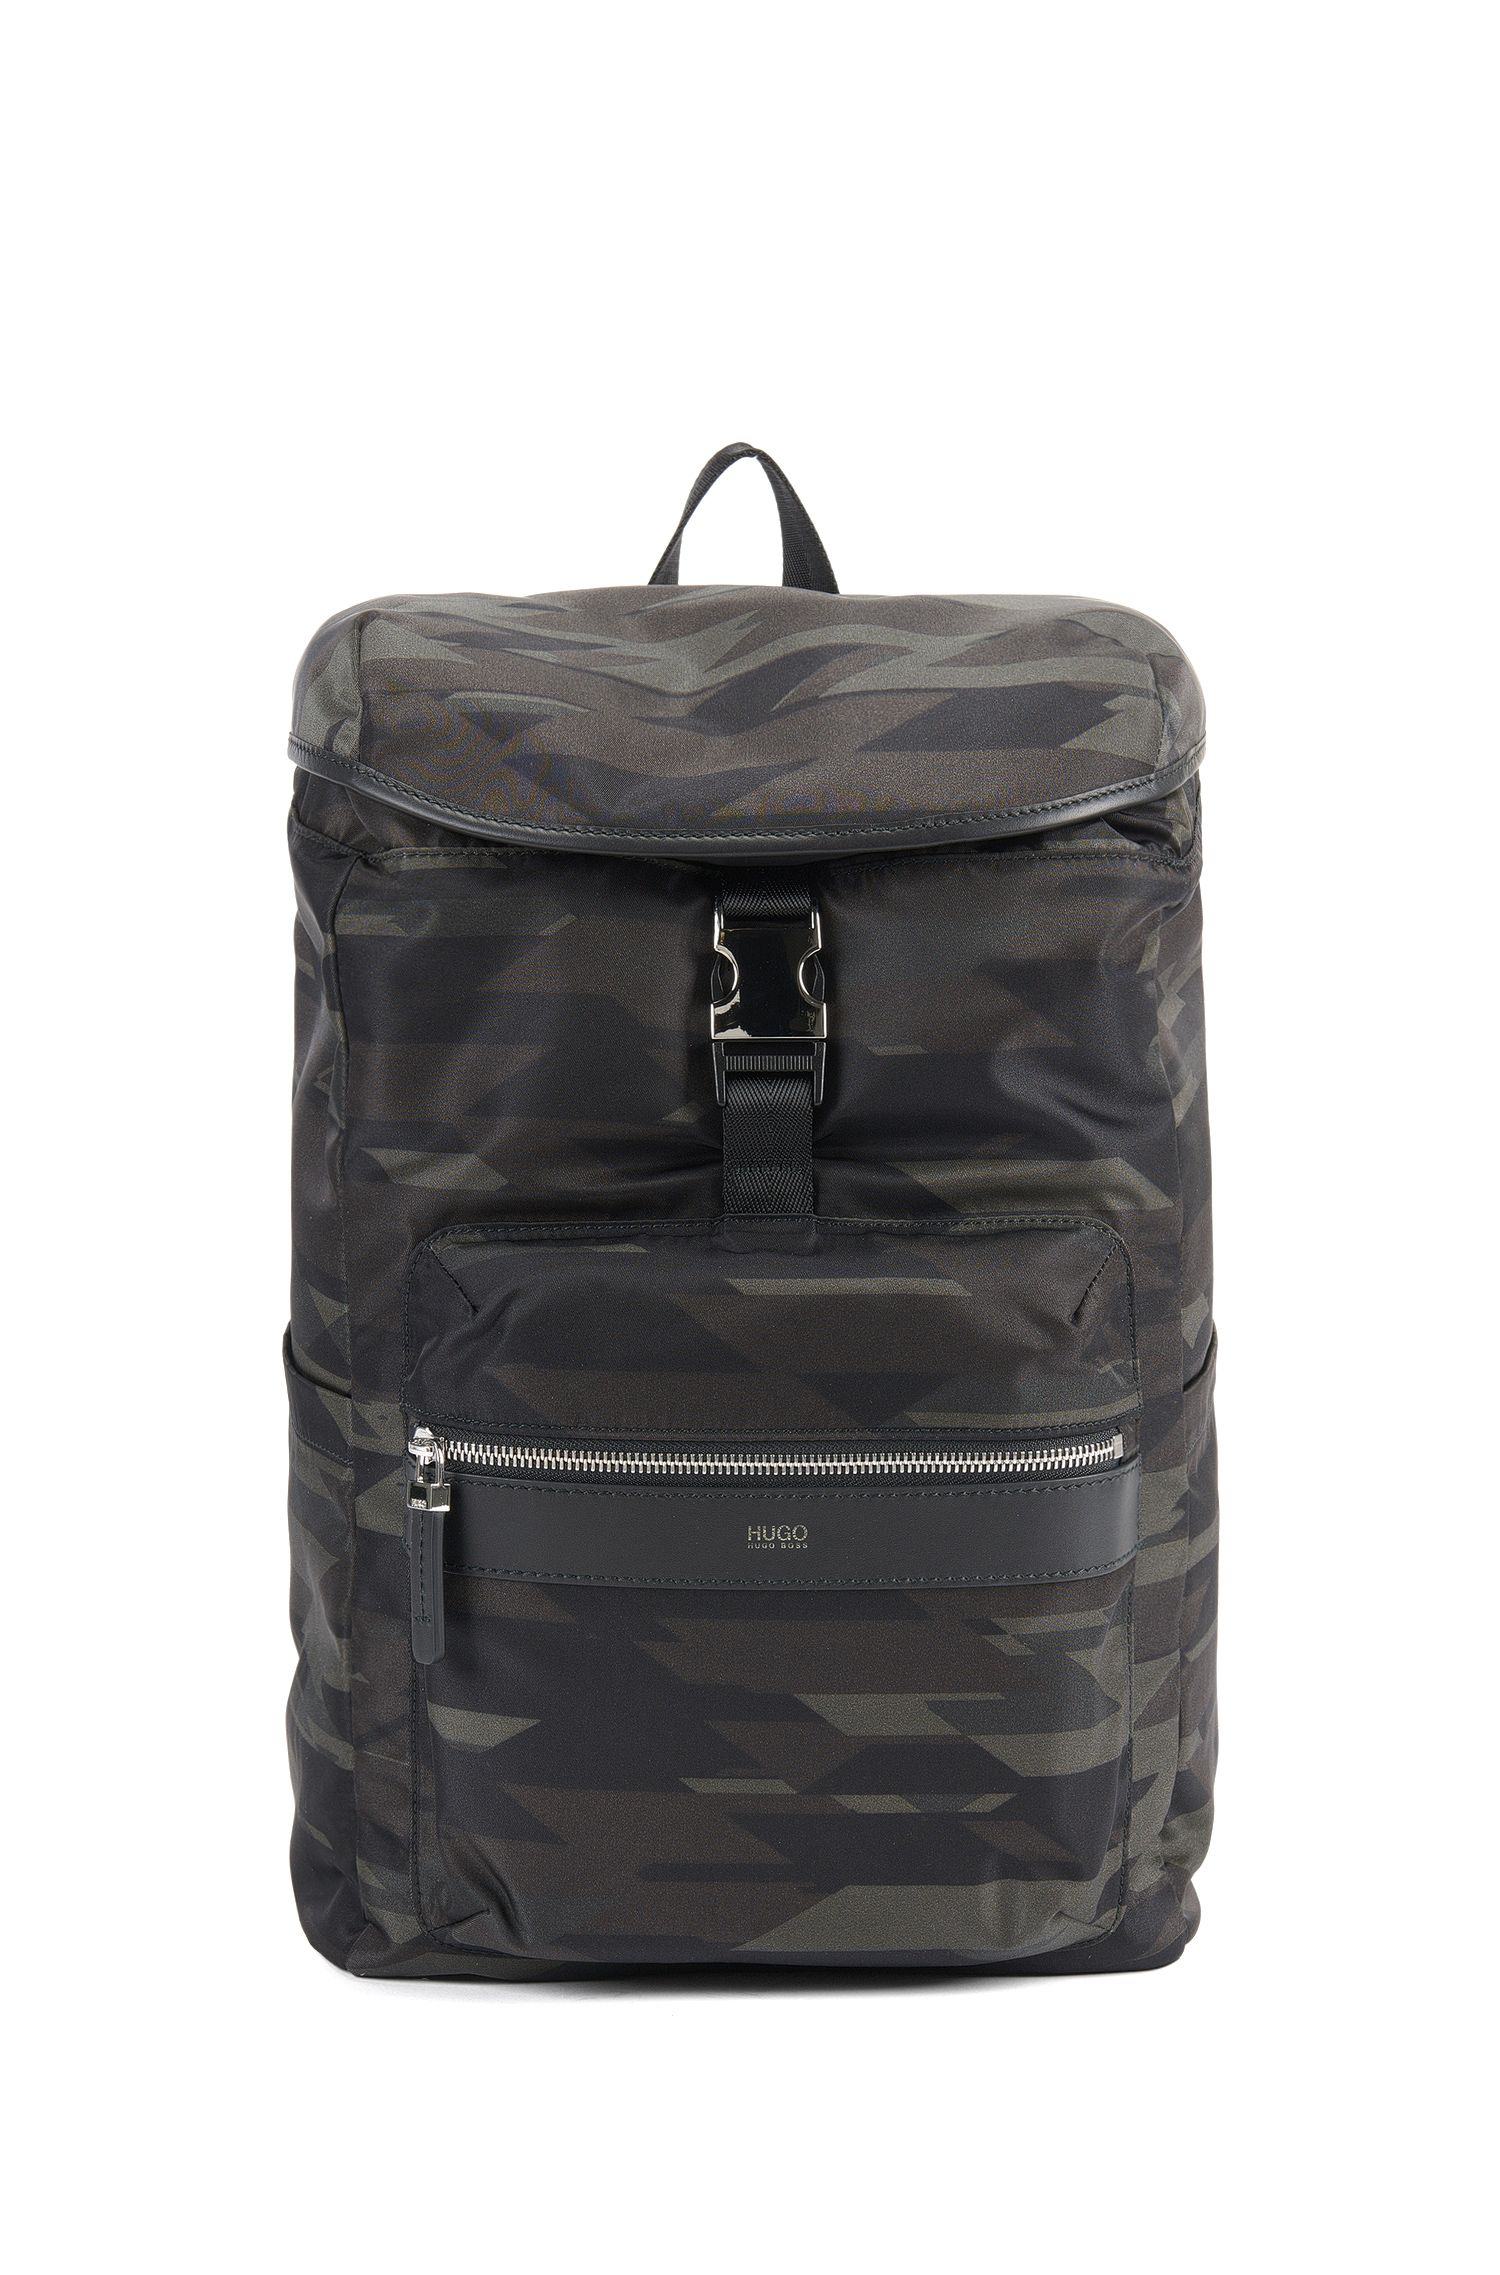 Camouflage-print nylon backpack with leather trim